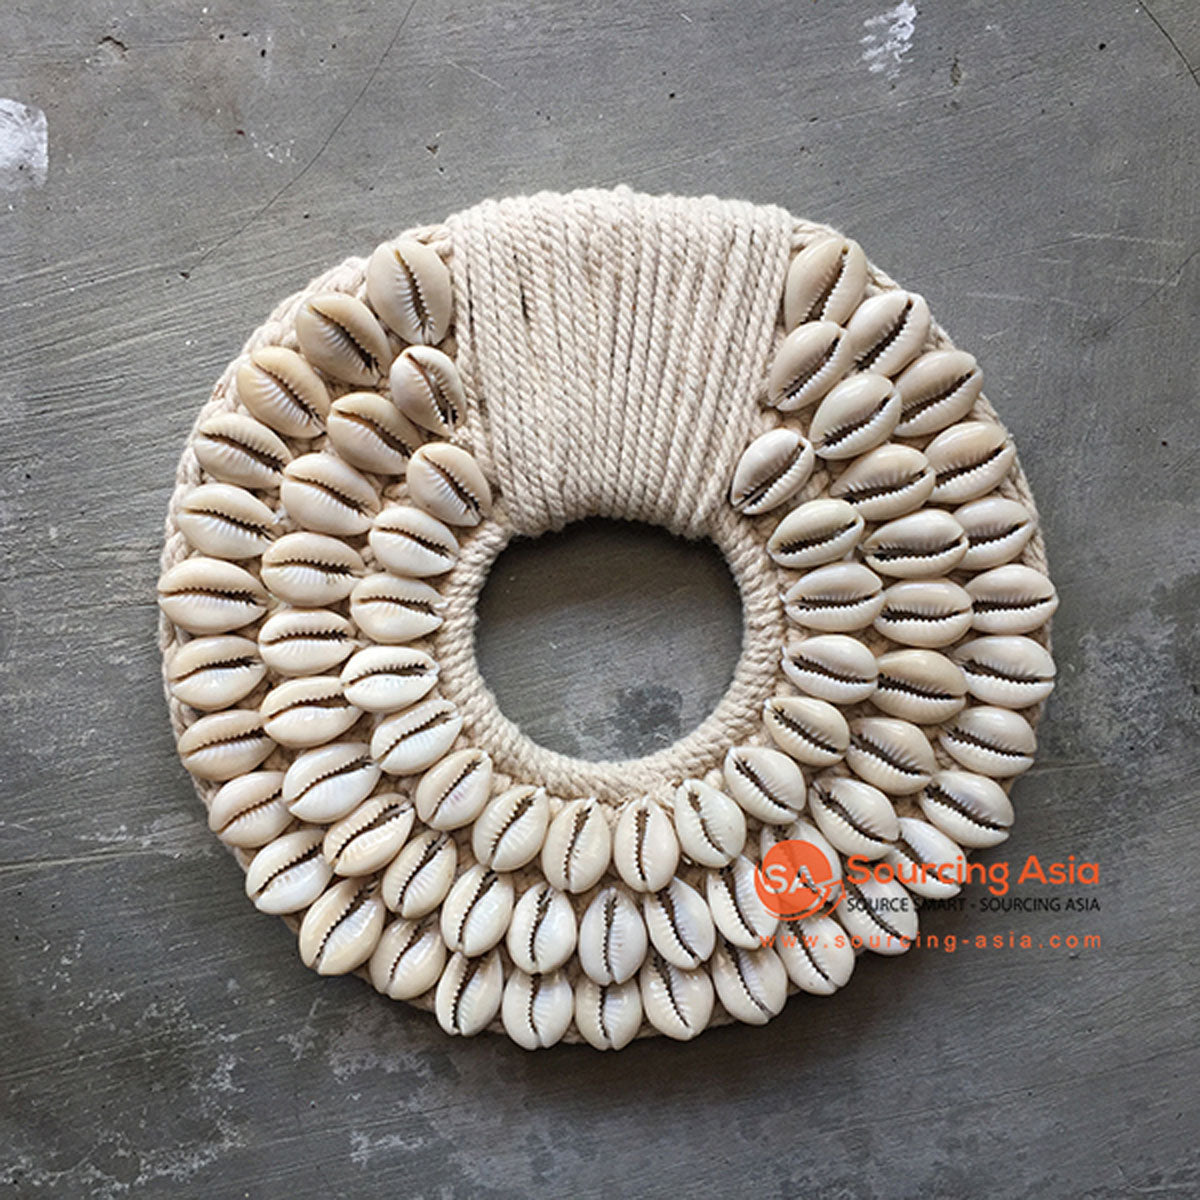 SHL068-6 WHITE COWRIE SHELL ROUND HANGING WALL DECORATION